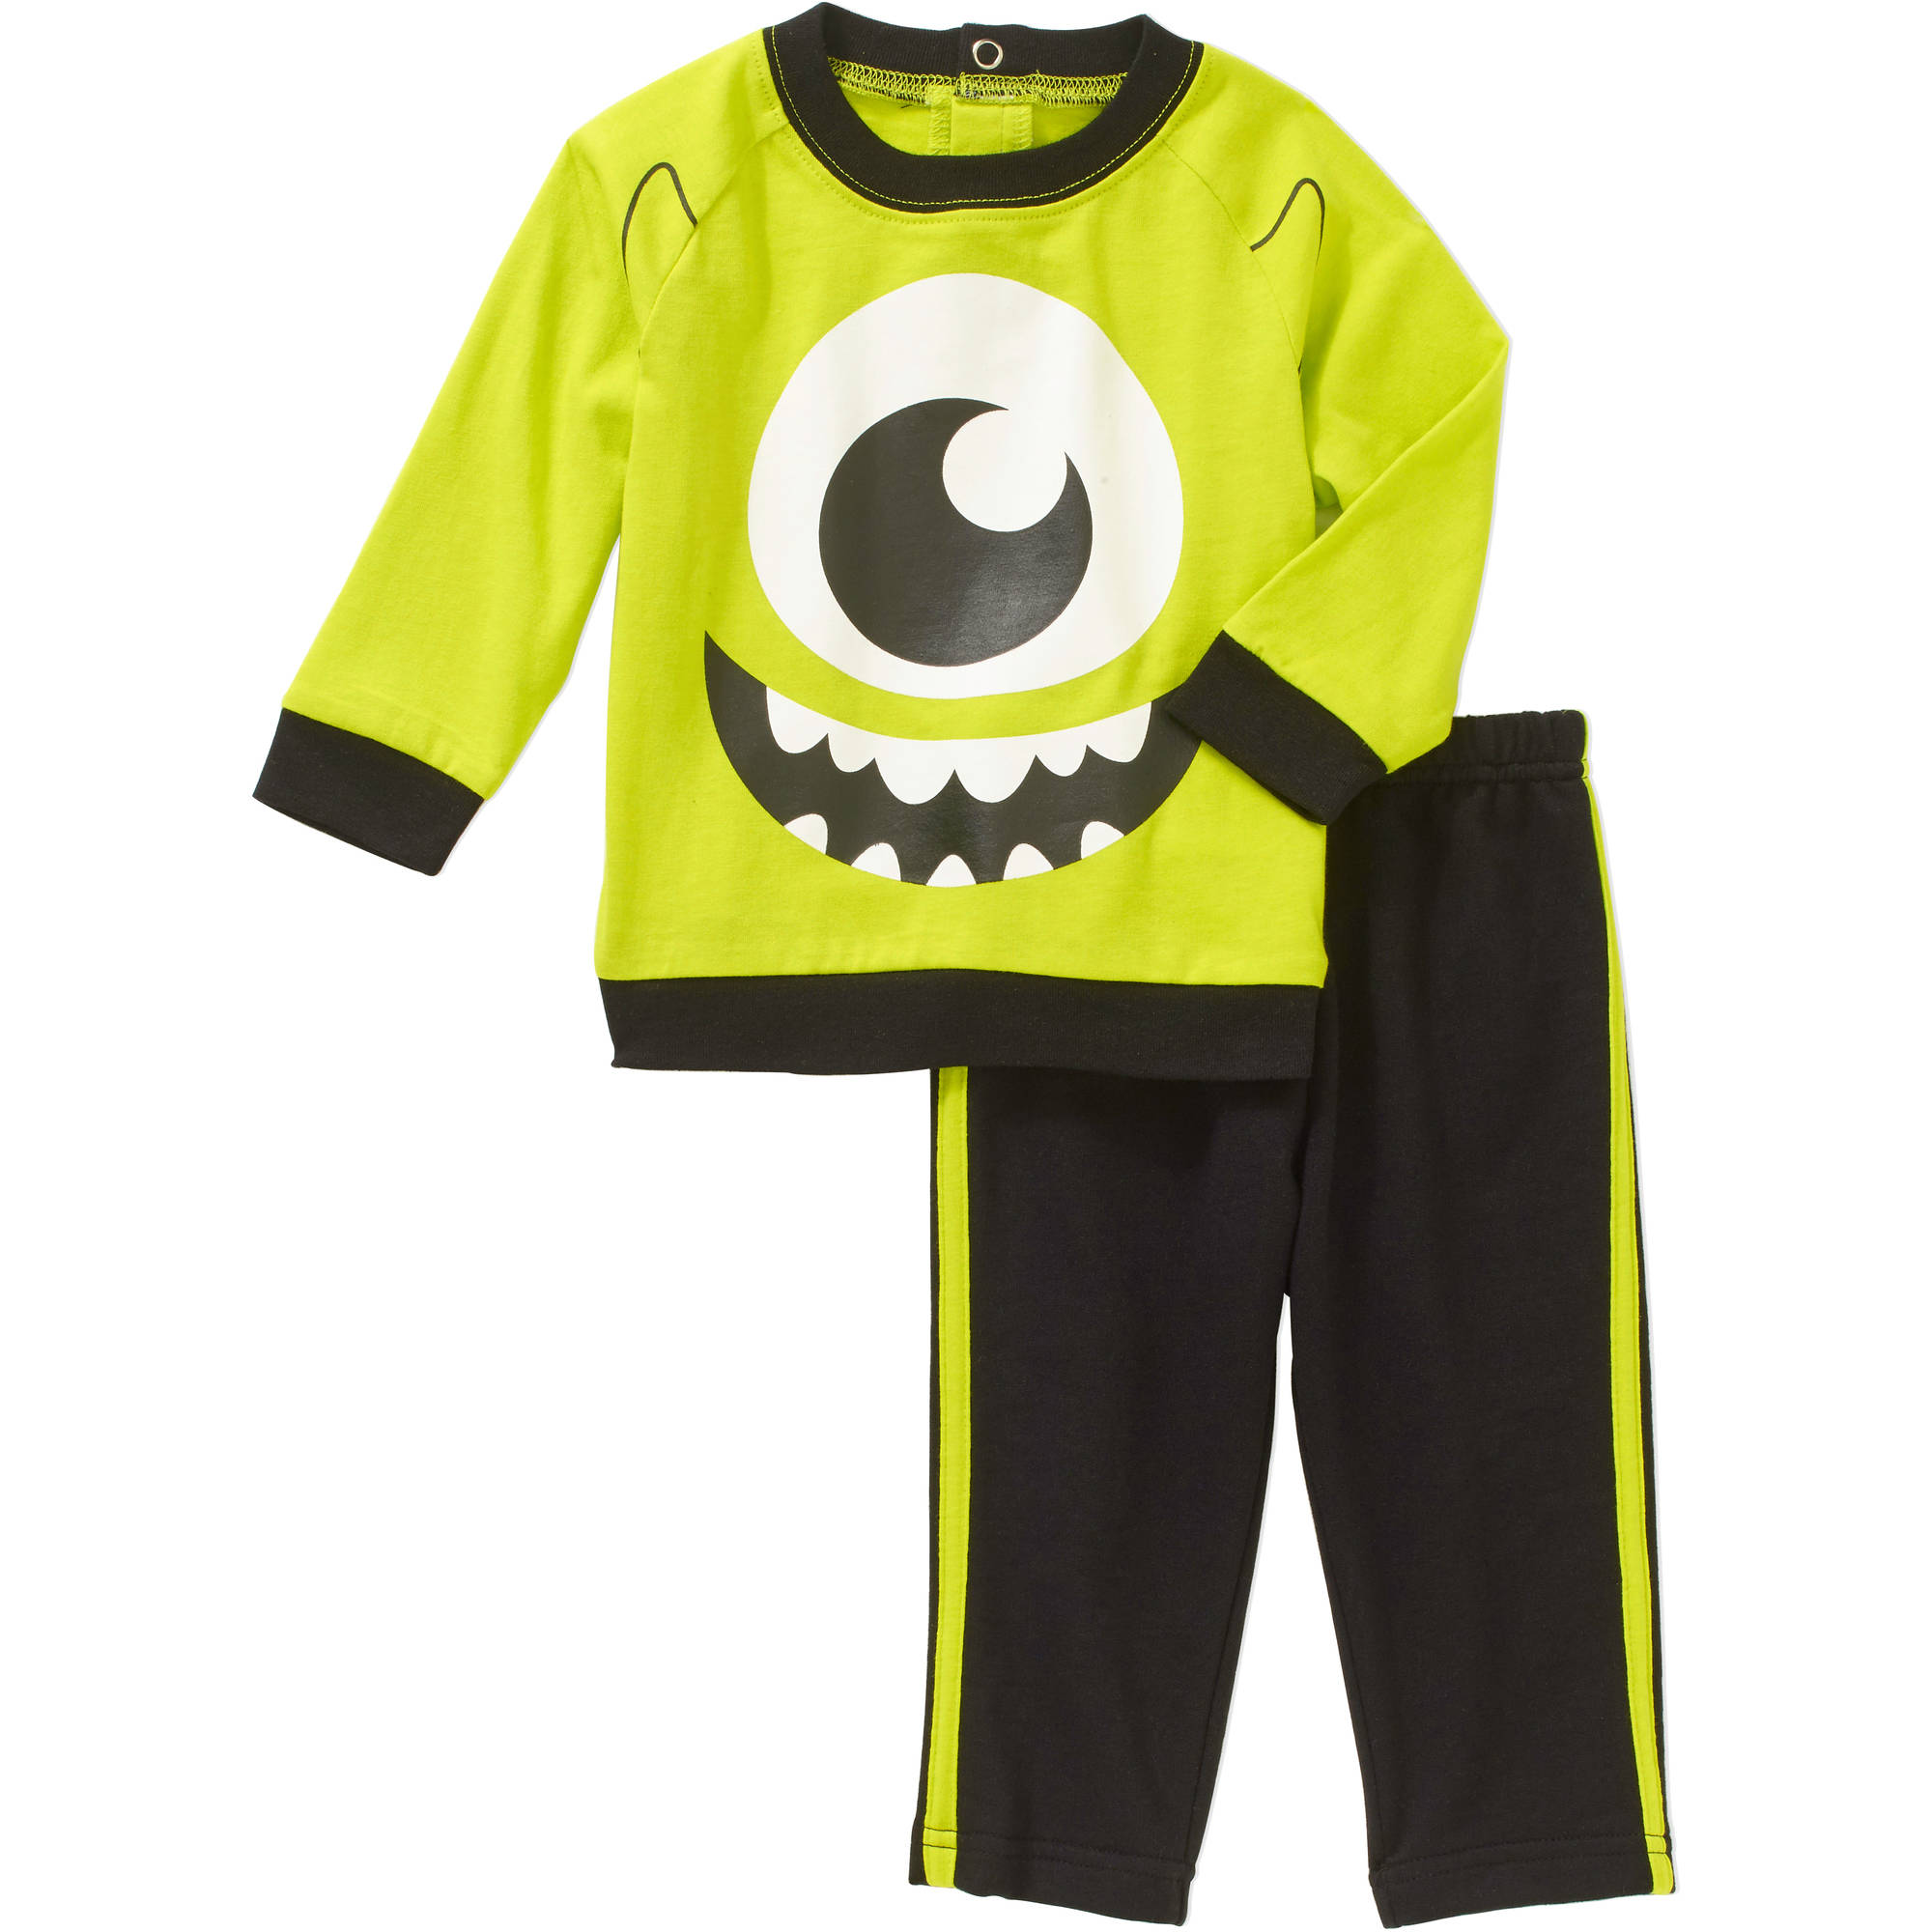 Monsters Inc. Newborn Baby Boys' French Terry Top and Jersey Pants Outfit Set